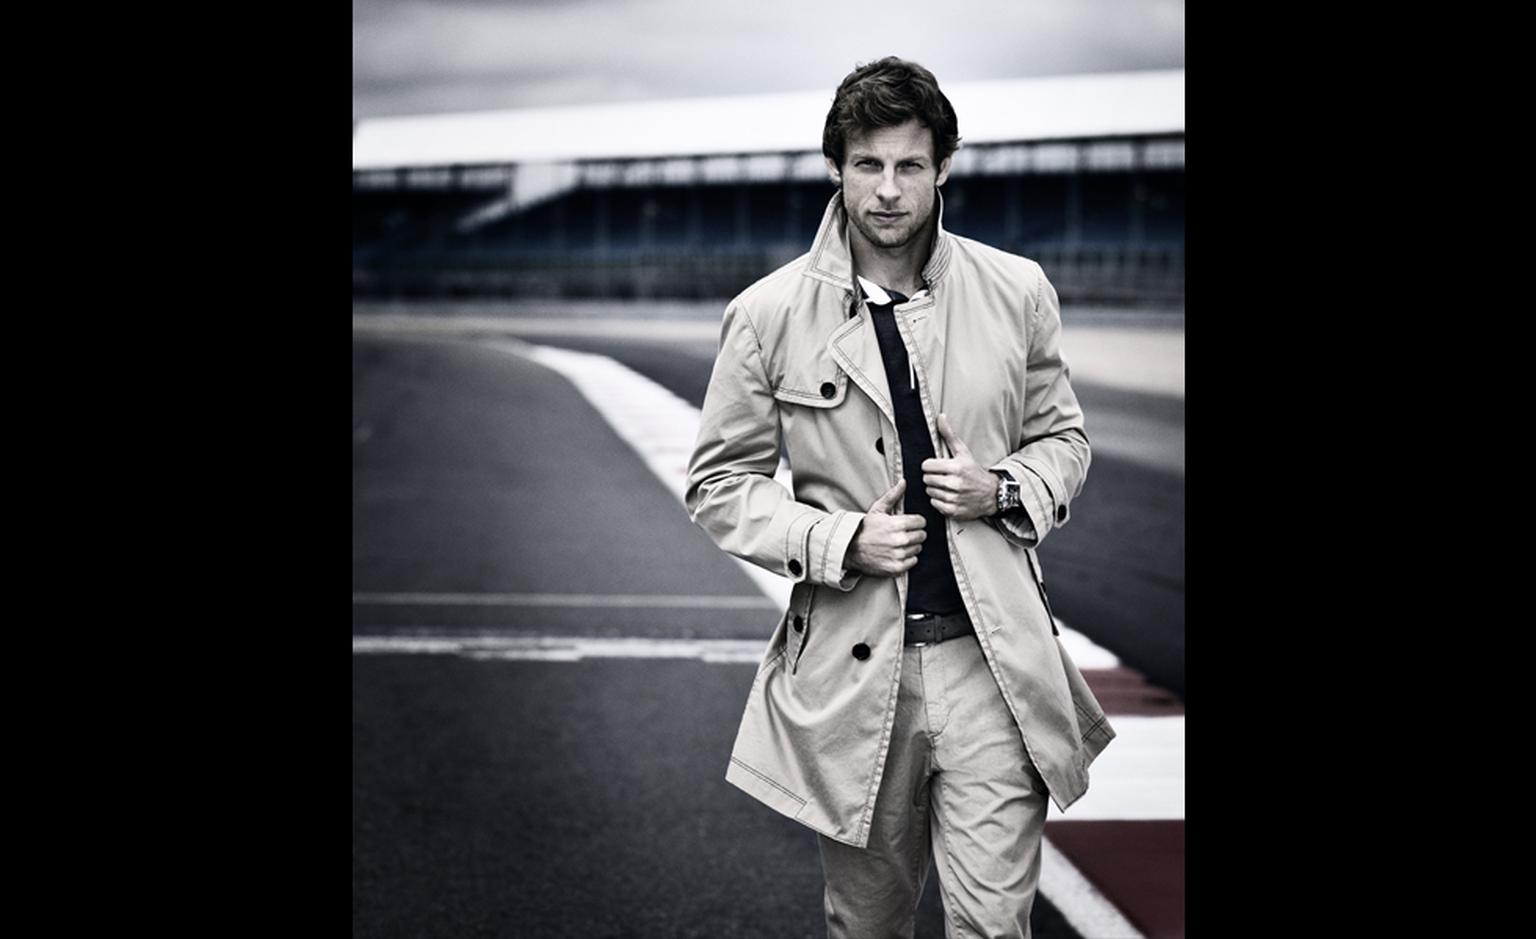 TAG HEUER. Jenson Button, 2011 with Monaco 24 Racing Calibre 36 Chronograph.